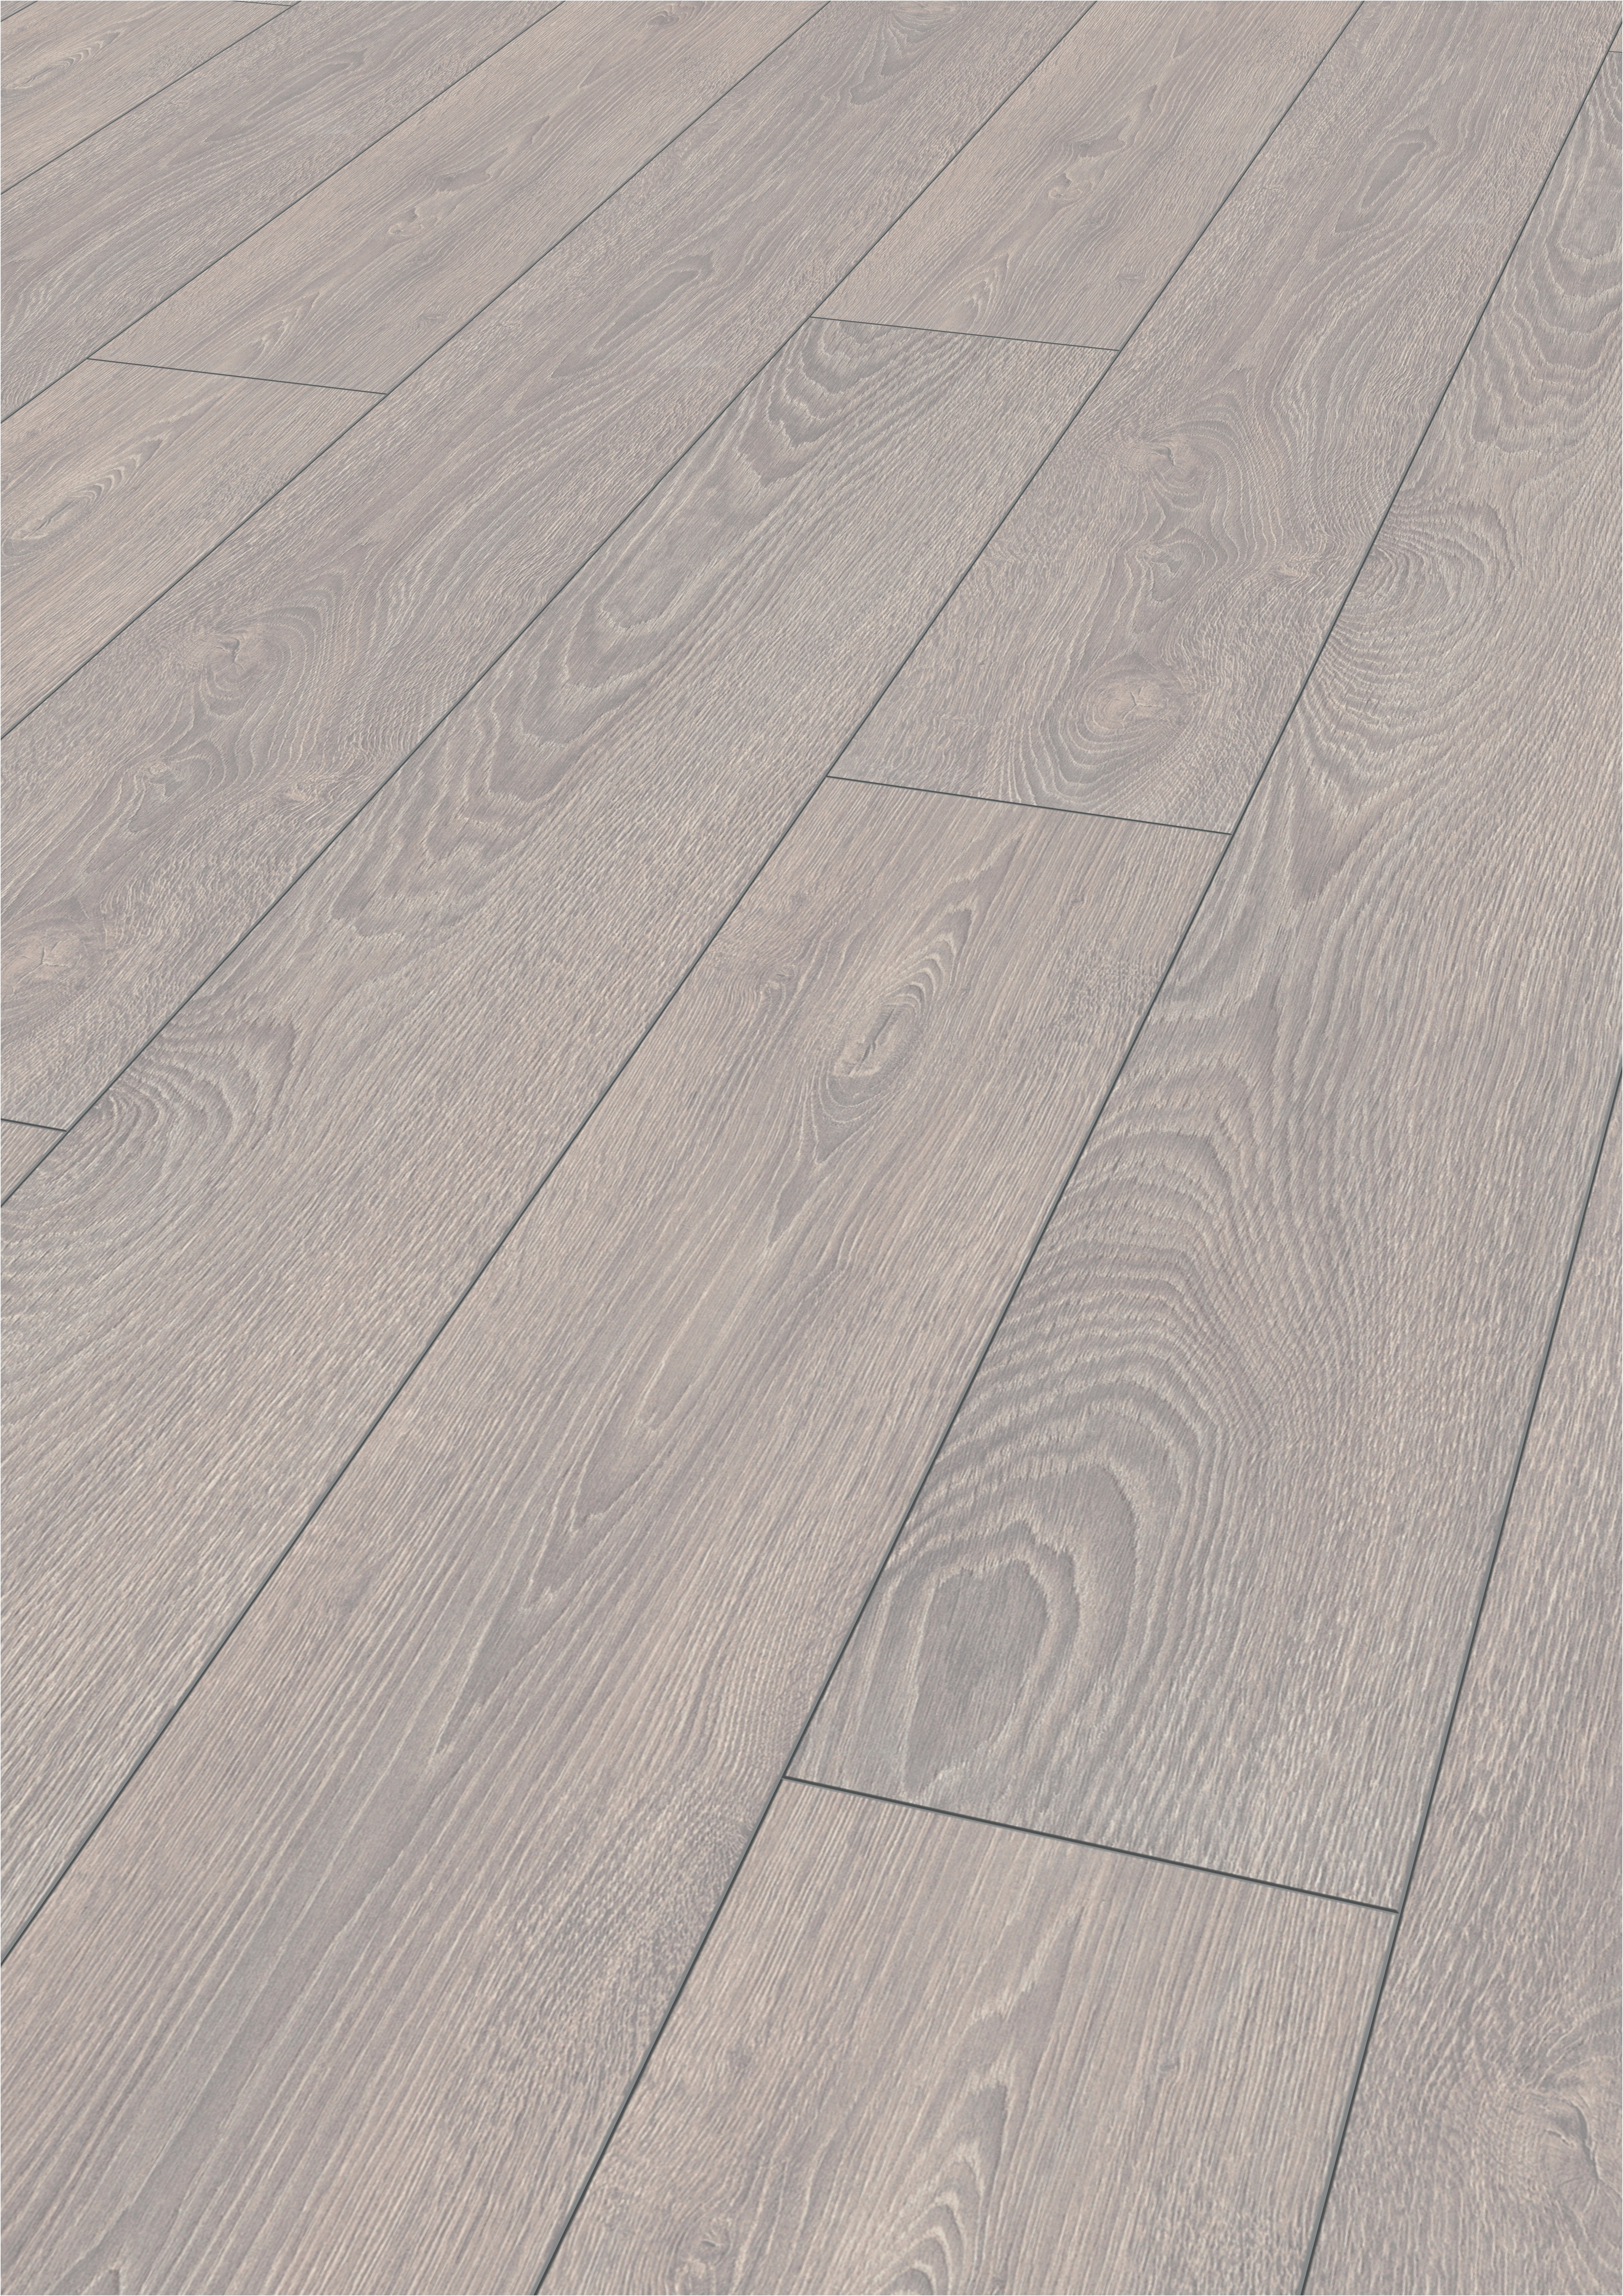 hardwood floor options home of can you burn laminate flooring flooring design intended for can you burn laminate flooring best of mammut laminate flooring in country house plank style